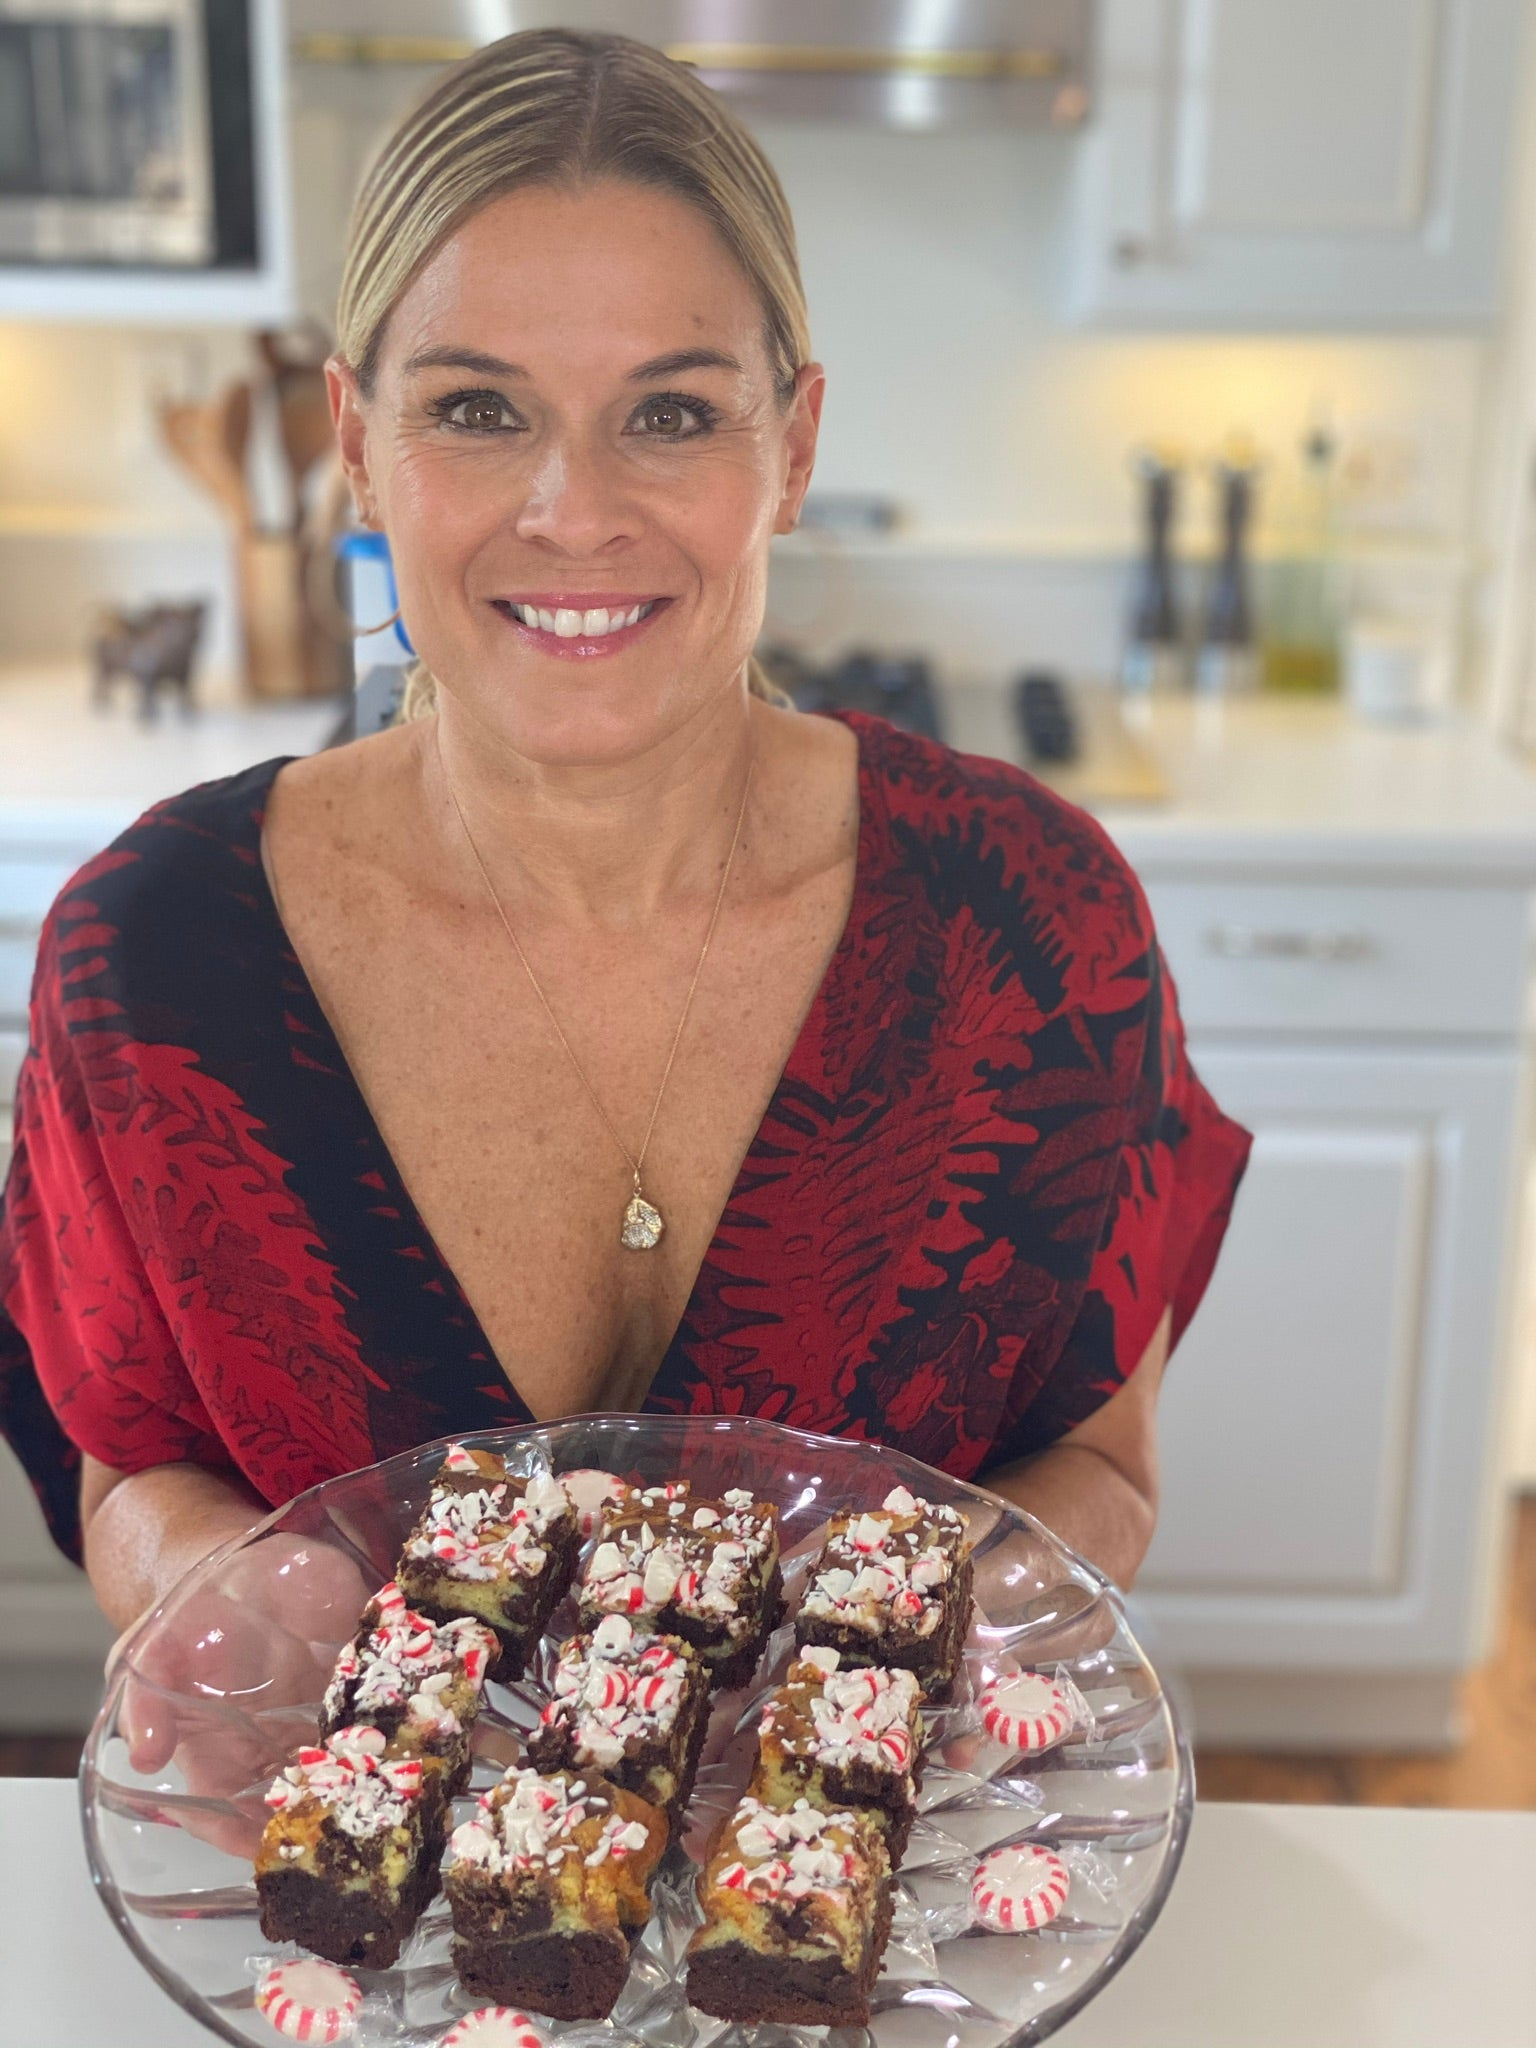 Cat Cora's Eggnog Cheesecake Brownies with Crushed Peppermint Topping